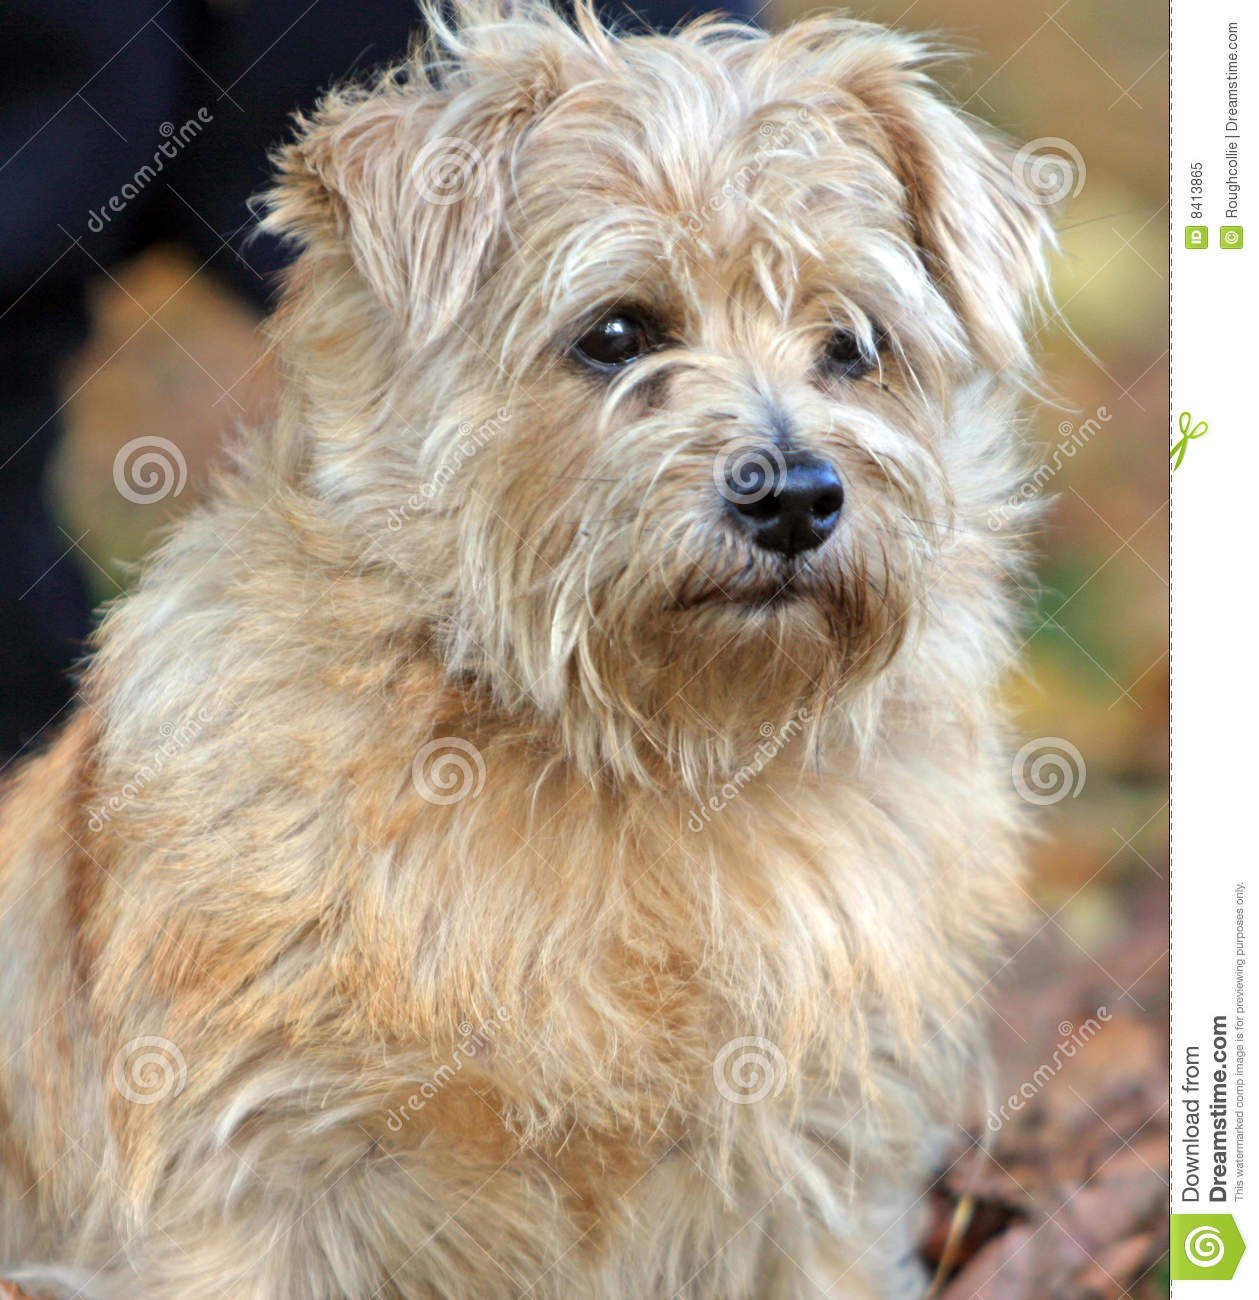 Pretty Fall Desktop Wallpaper Norfolk Terrier Royalty Free Stock Photo Image 8413865